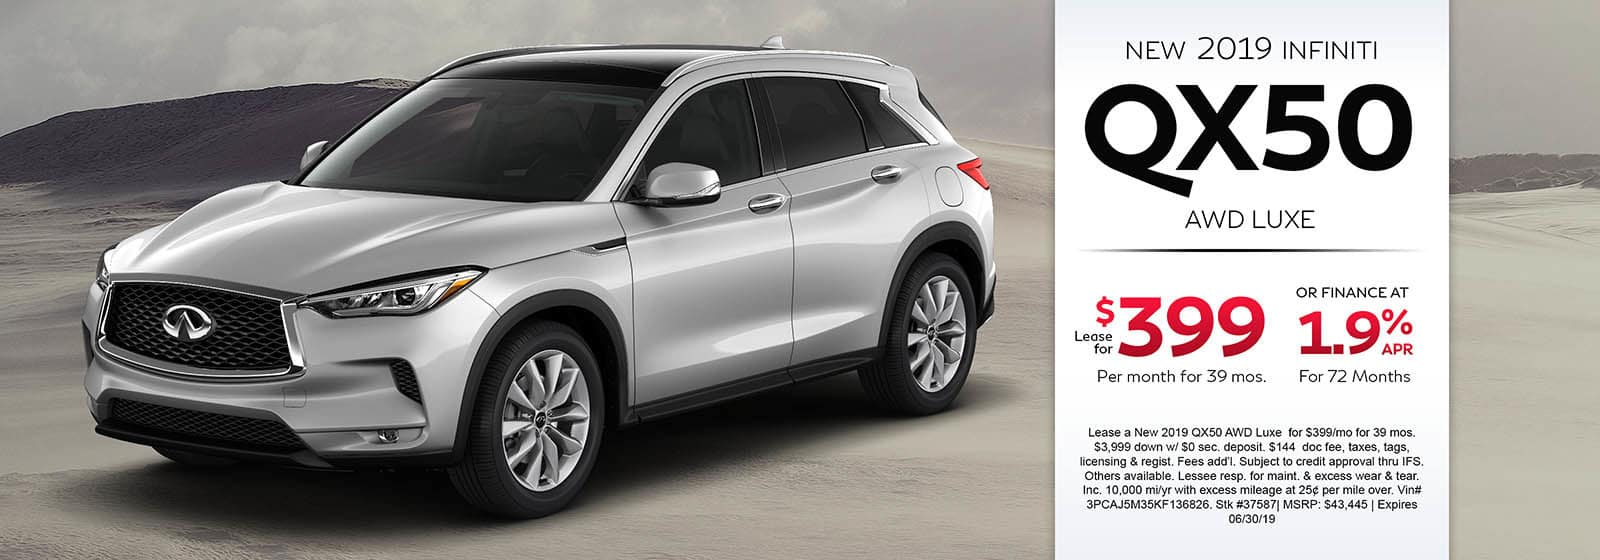 2019 INFINITI QX50 AWD LUXE Lease For $399